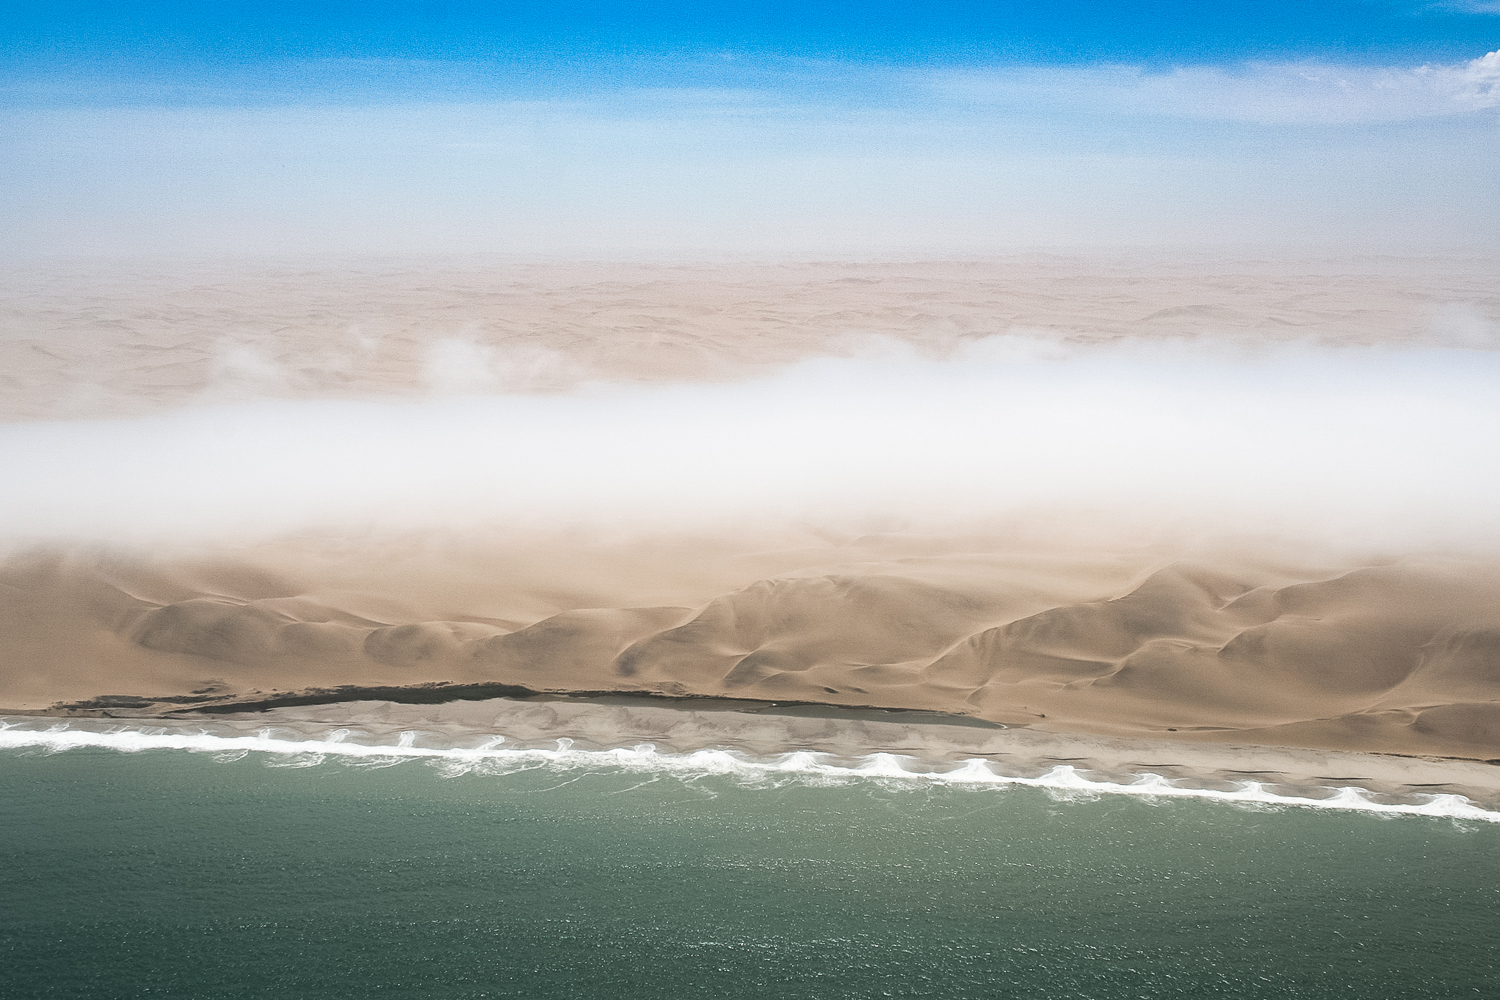 An aerial view of the Skeleton Coast